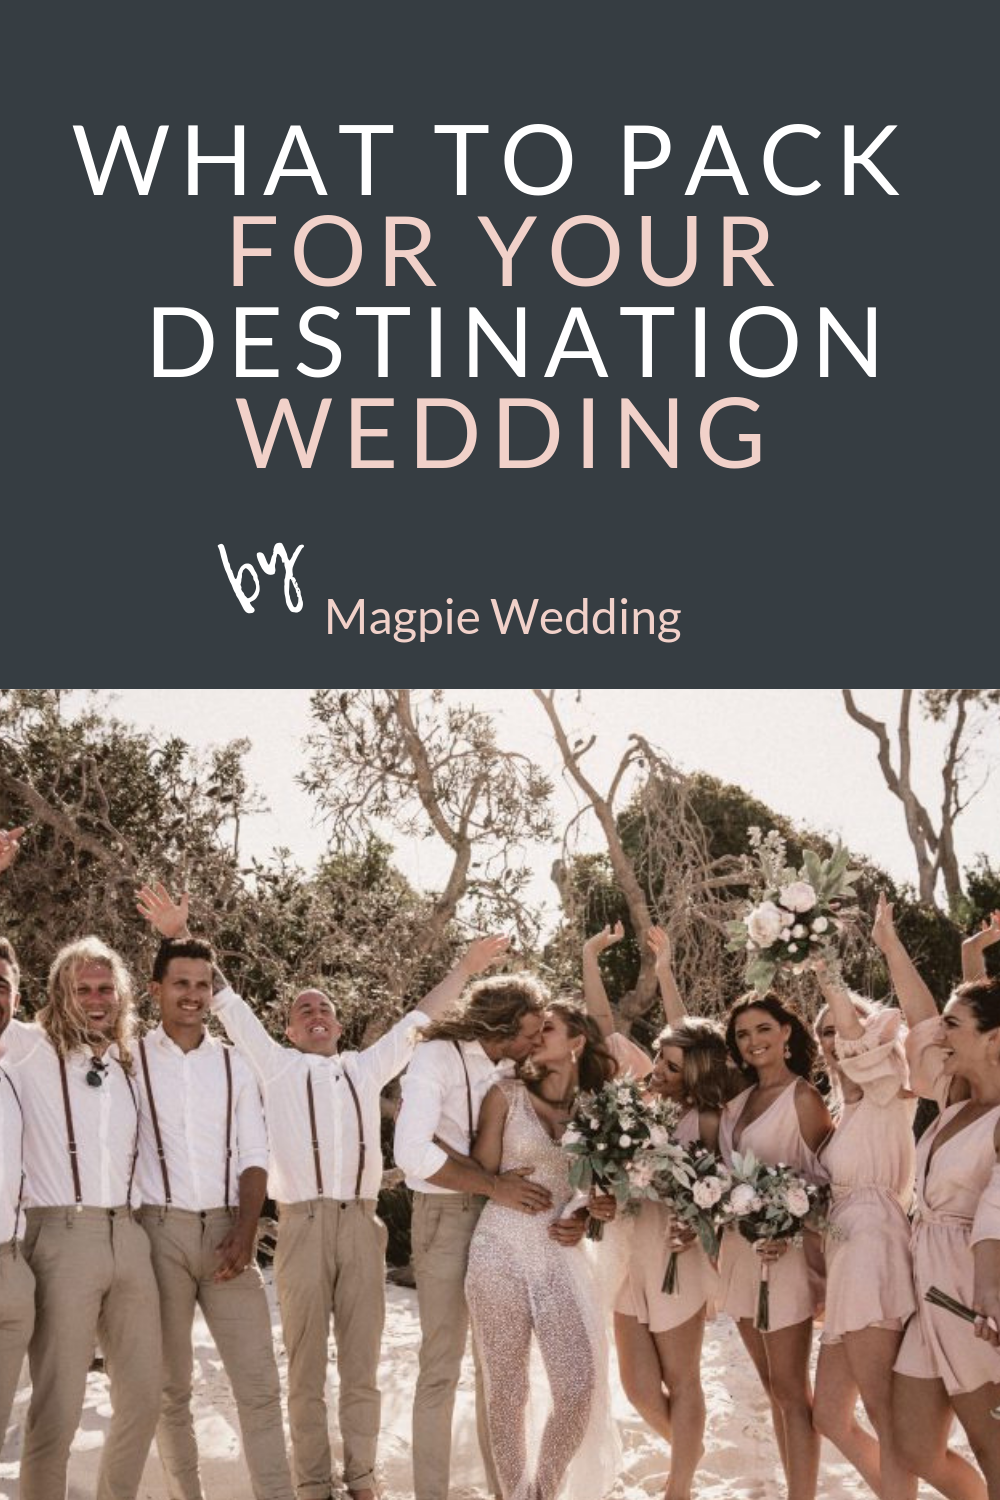 Wedding Planning - What to pack for your destination wedding